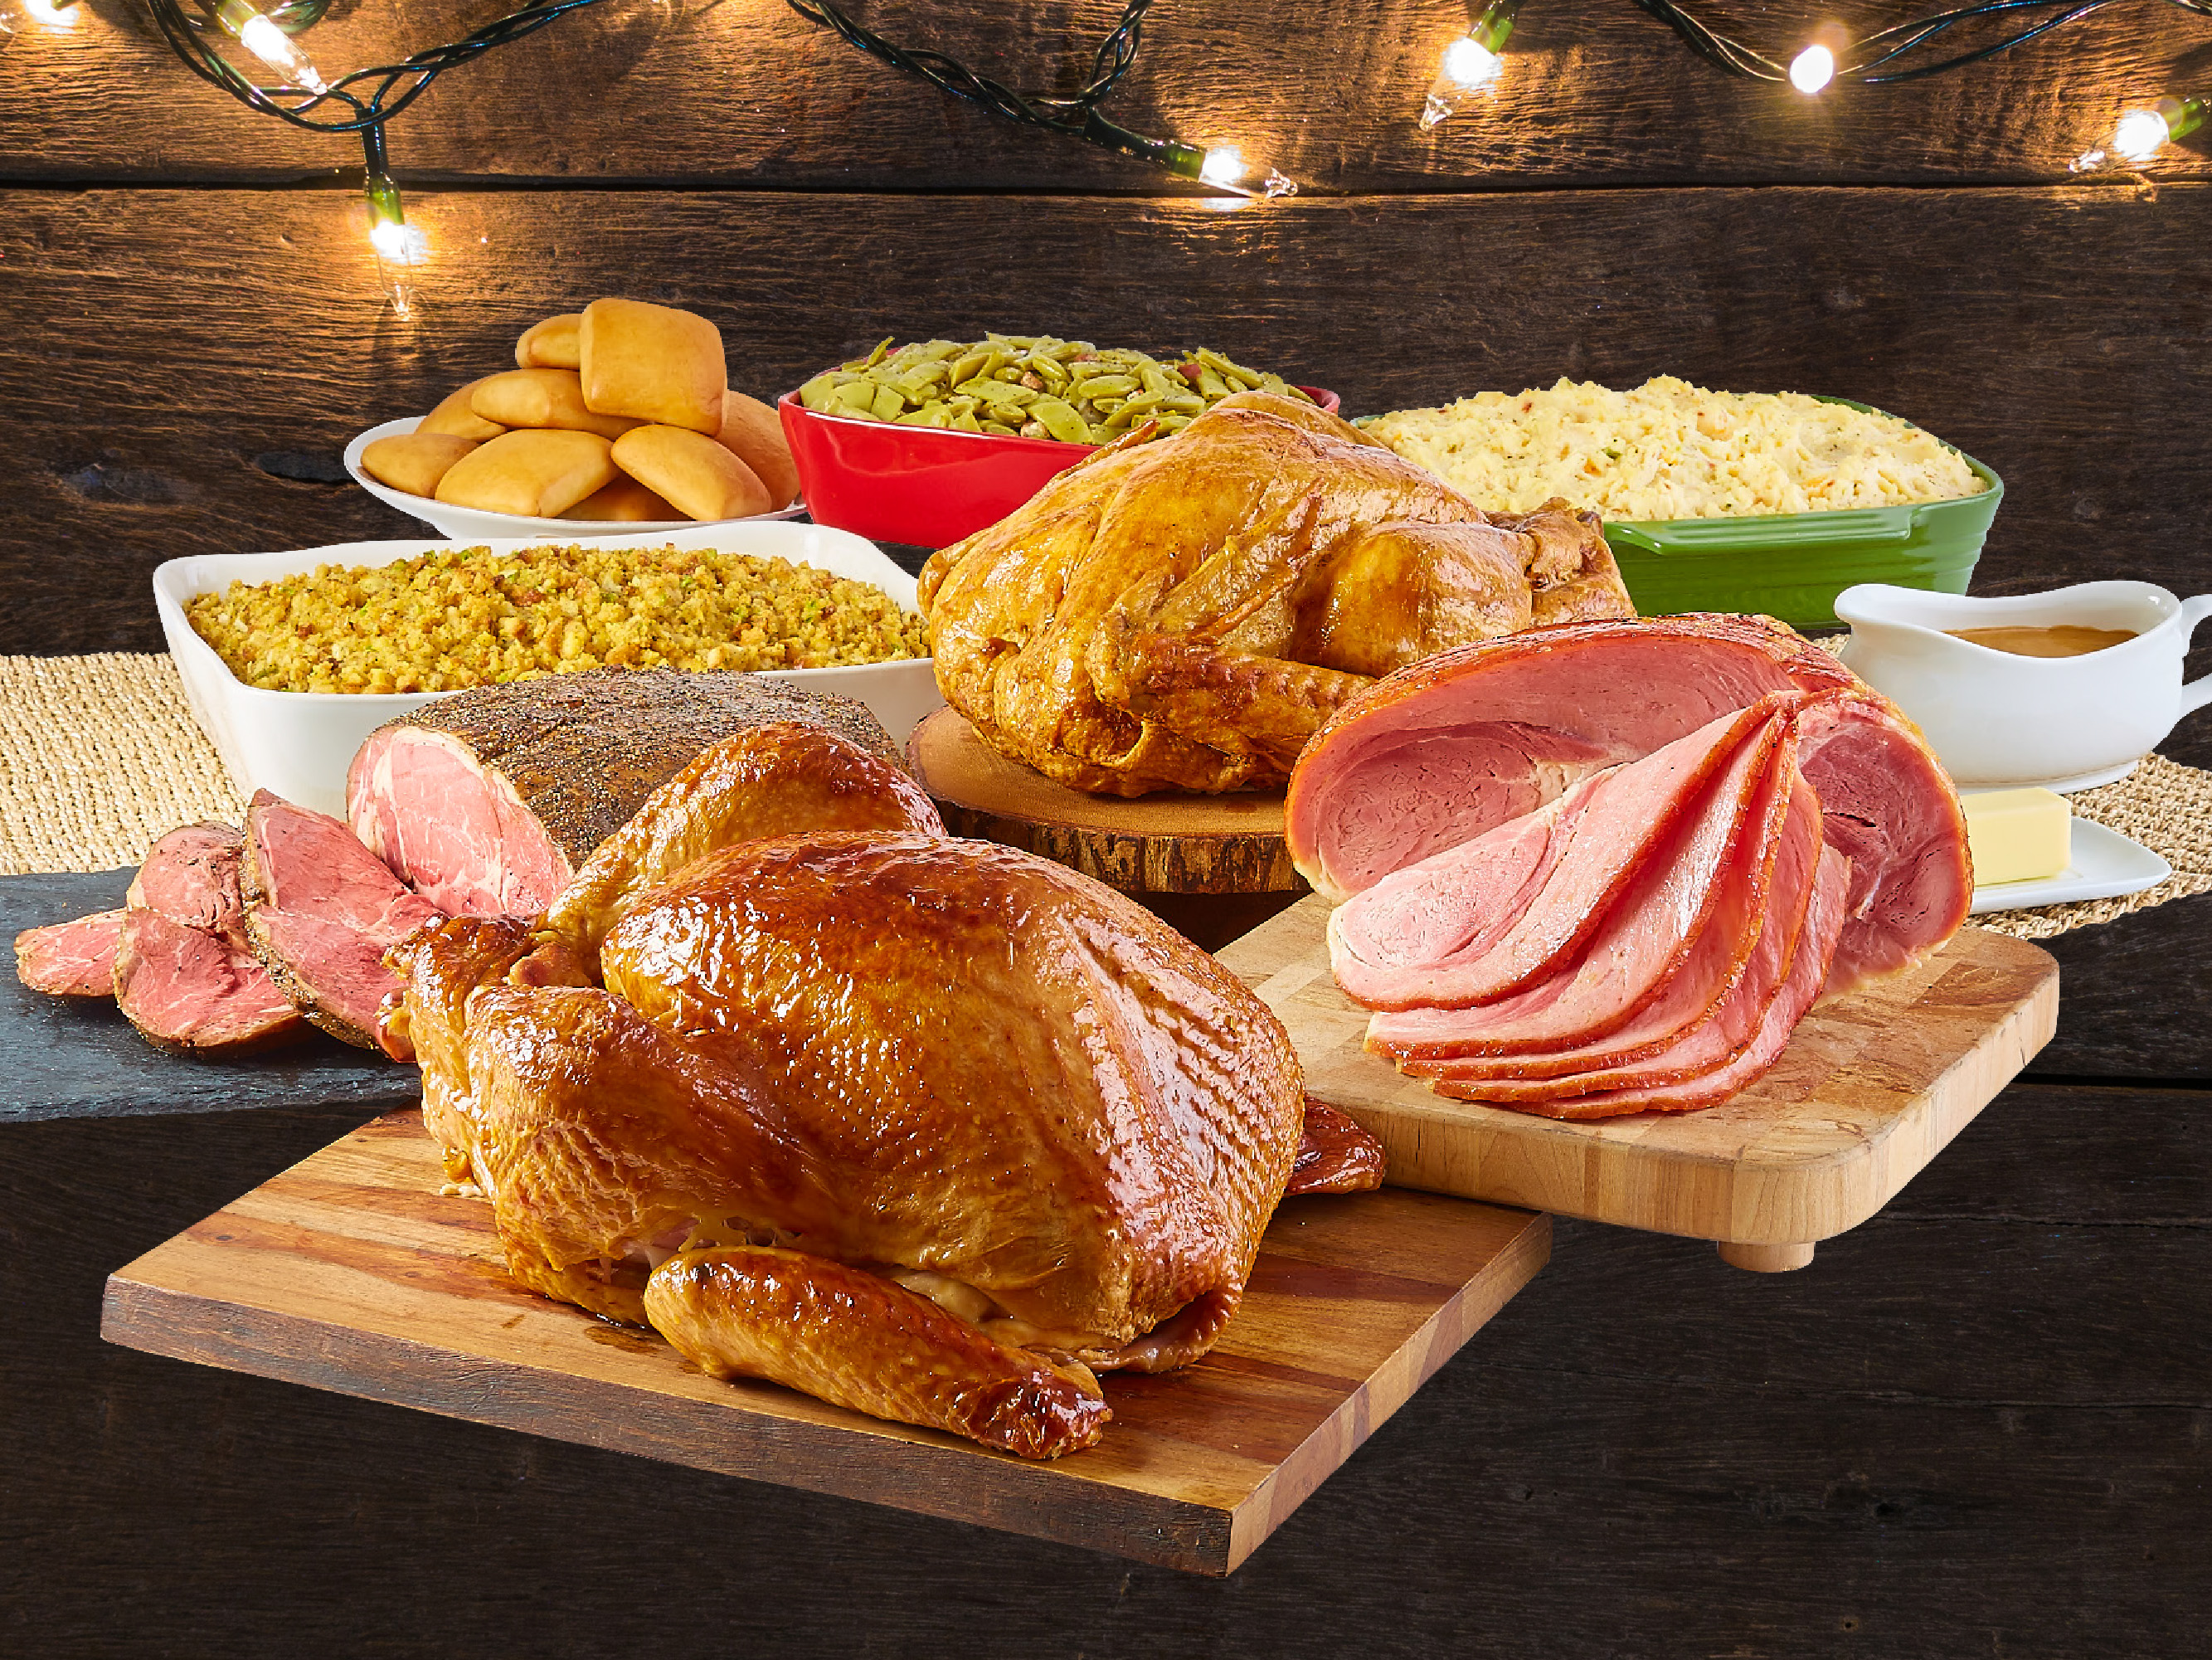 Dickey's Holiday Feasts includes the guests choice of meat with baked potato casserole, green beans, cornbread dressing and buttery rolls.